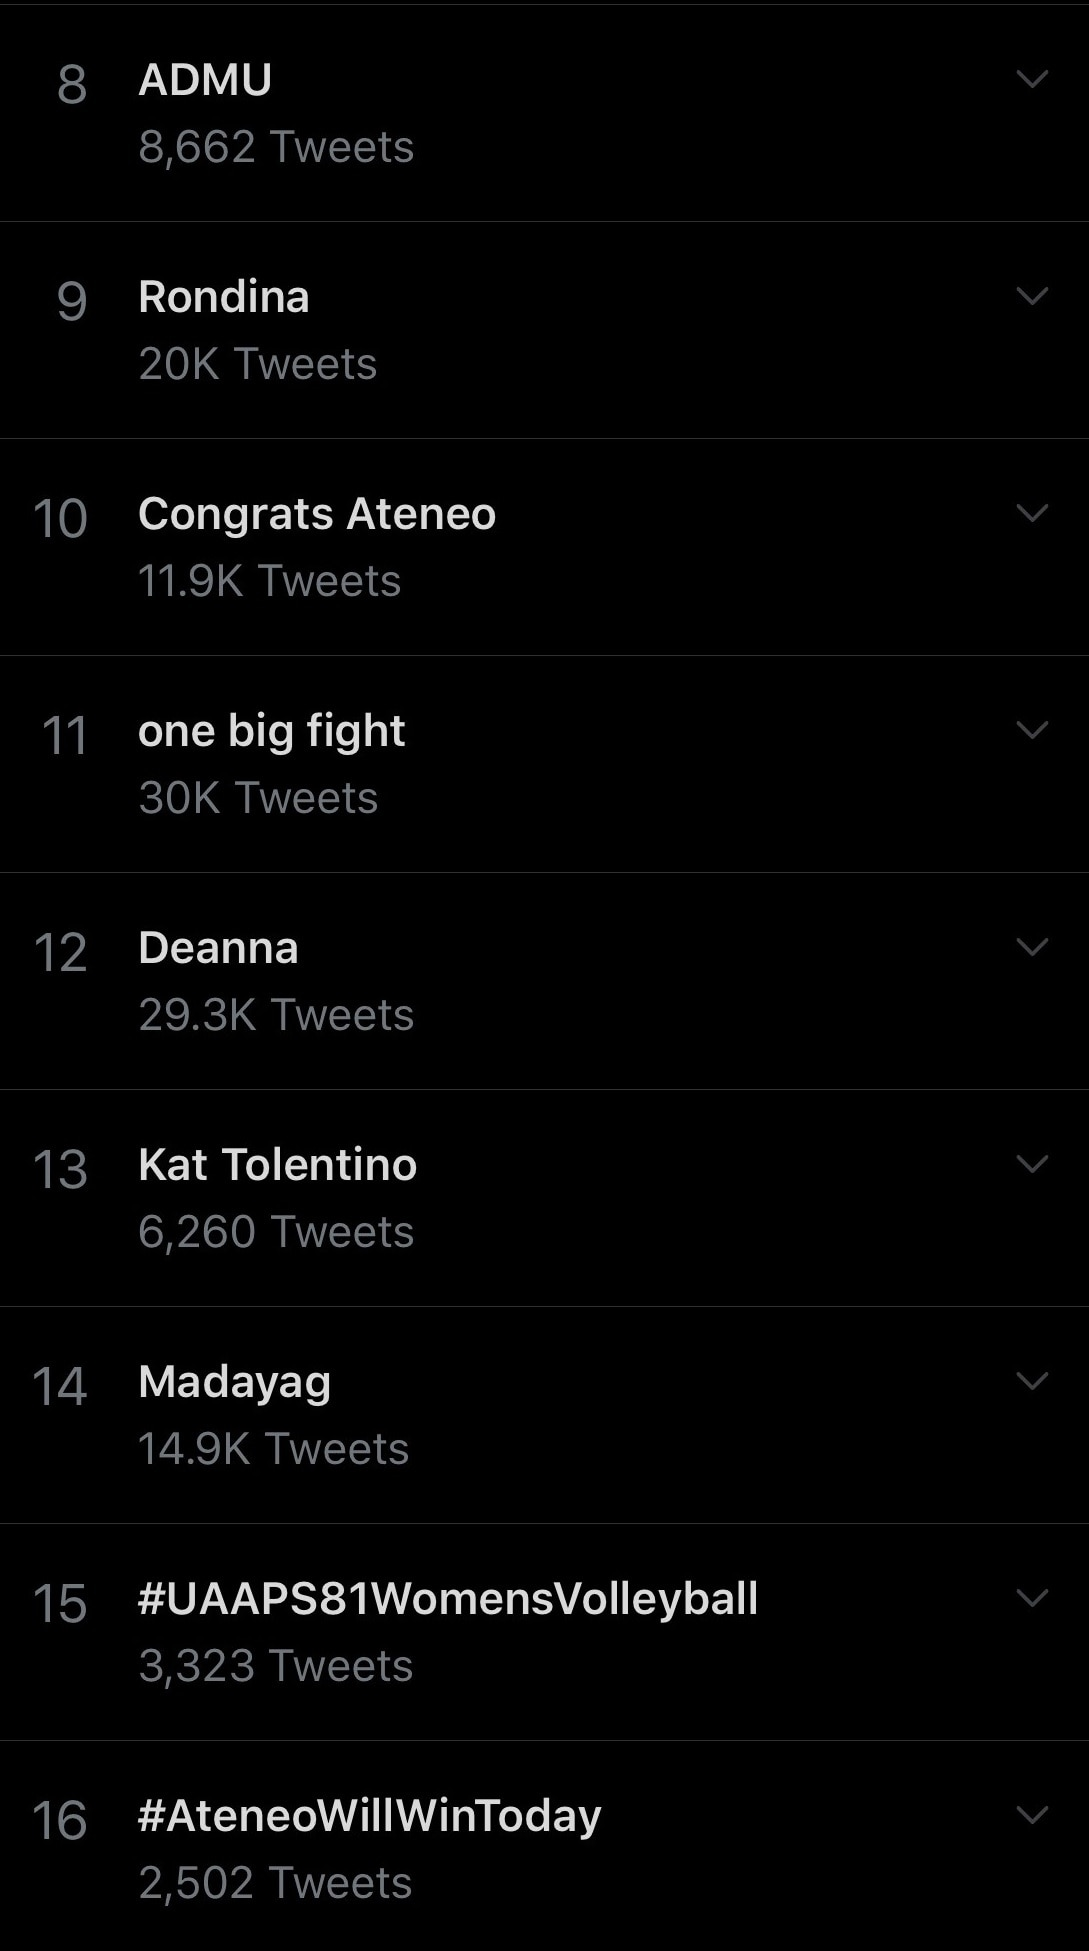 UAAP volleyball related topics trended again during and after Game 3 between Ateneo and UST